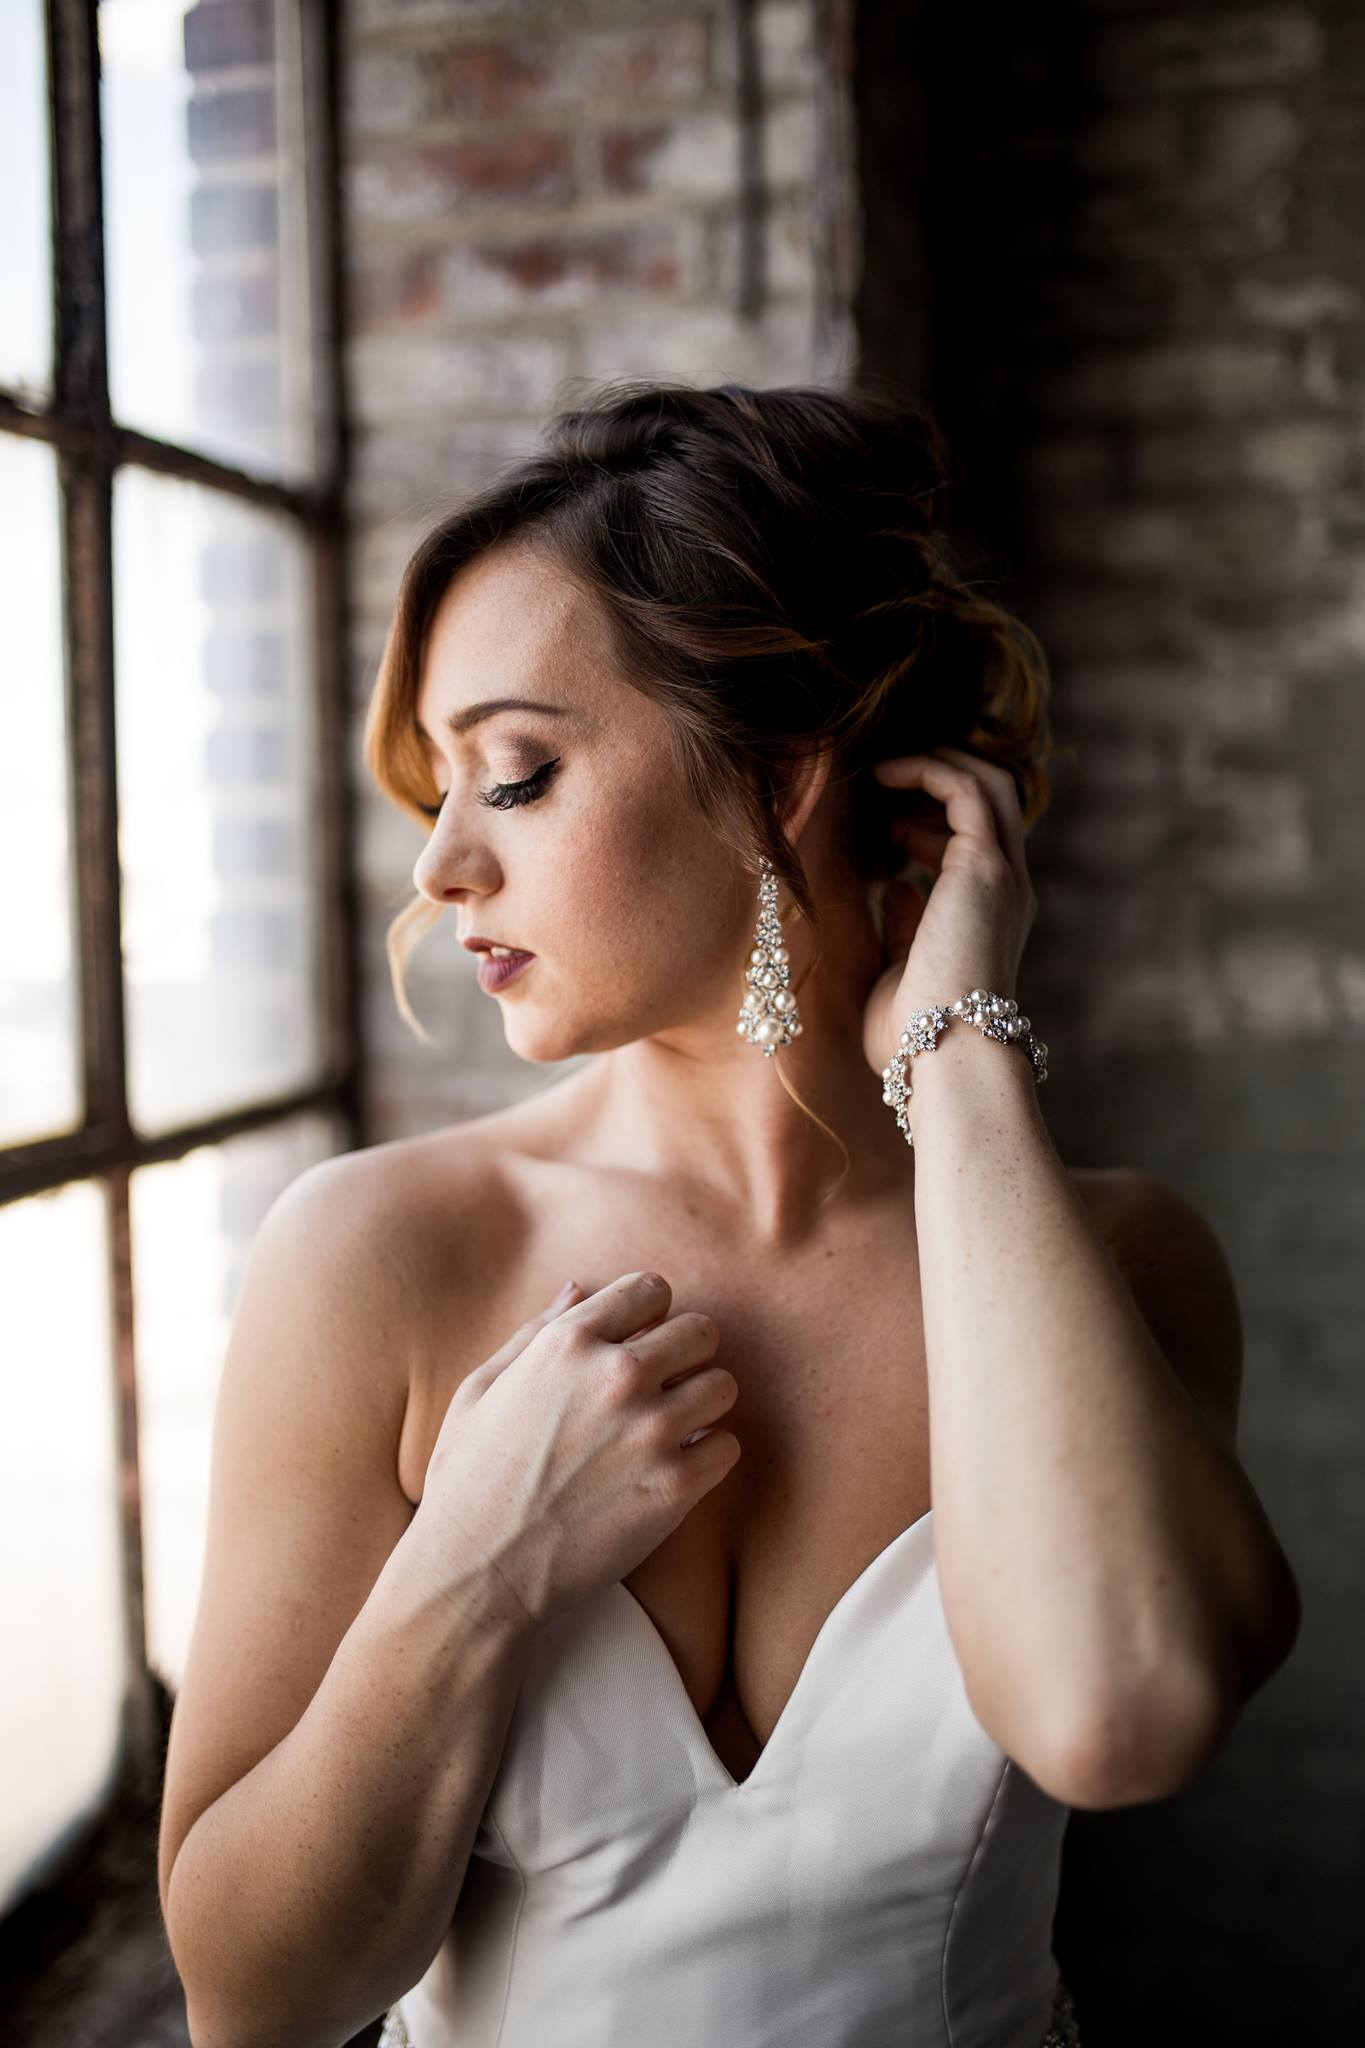 TOLEDO MAKEUP ARTIST. Bridal Makeup in Ohio. Styled shoot with Captured by Hannah Photography, Hafner Florist, Event Prep. Airbrush Makeup Toledo, OH. April 2017.6.jpg